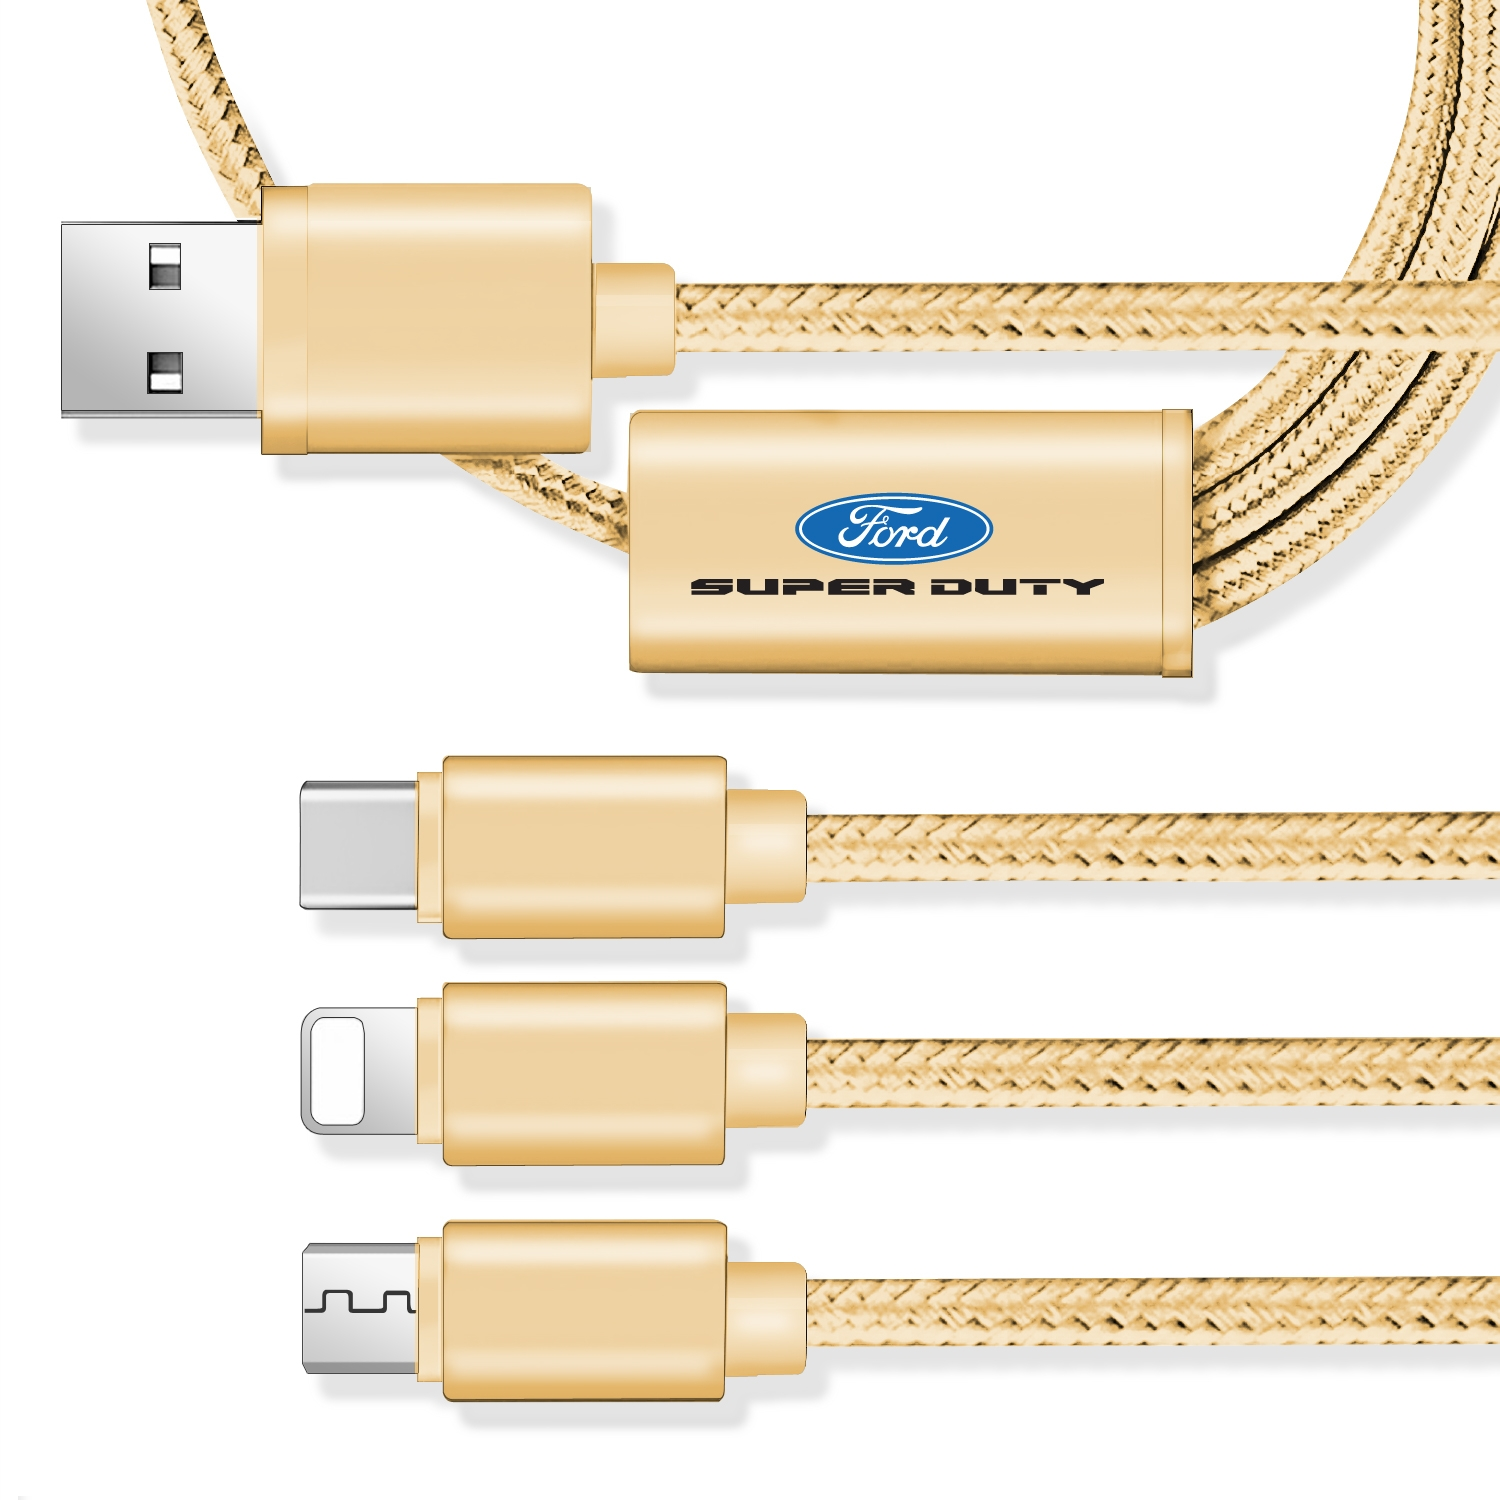 Ford Super-Duty 3 in 1 Golden 4 Ft Premium Multi Charging Cord USB Cable